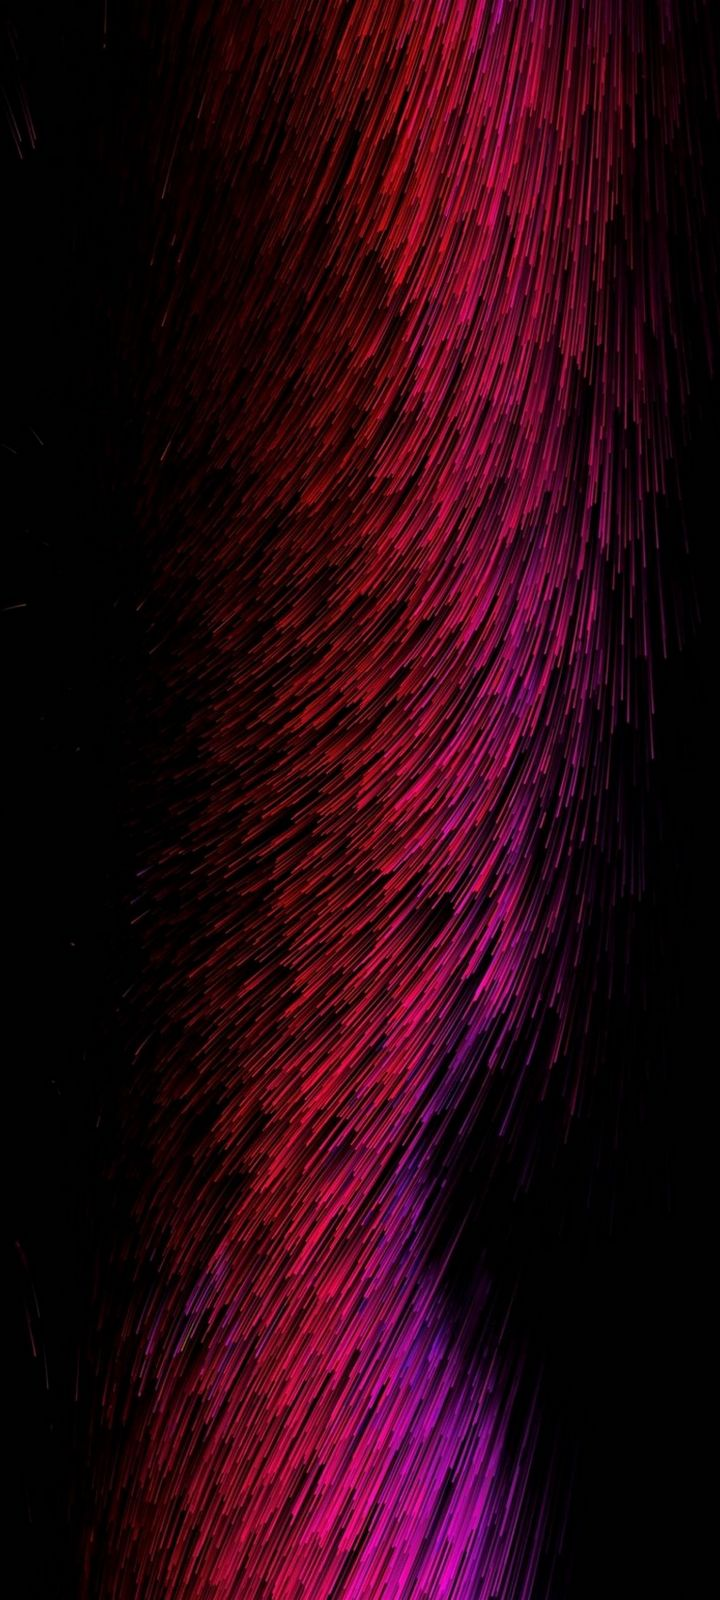 Threads Glow Red Pink Abstract Wallpaper 720x1600